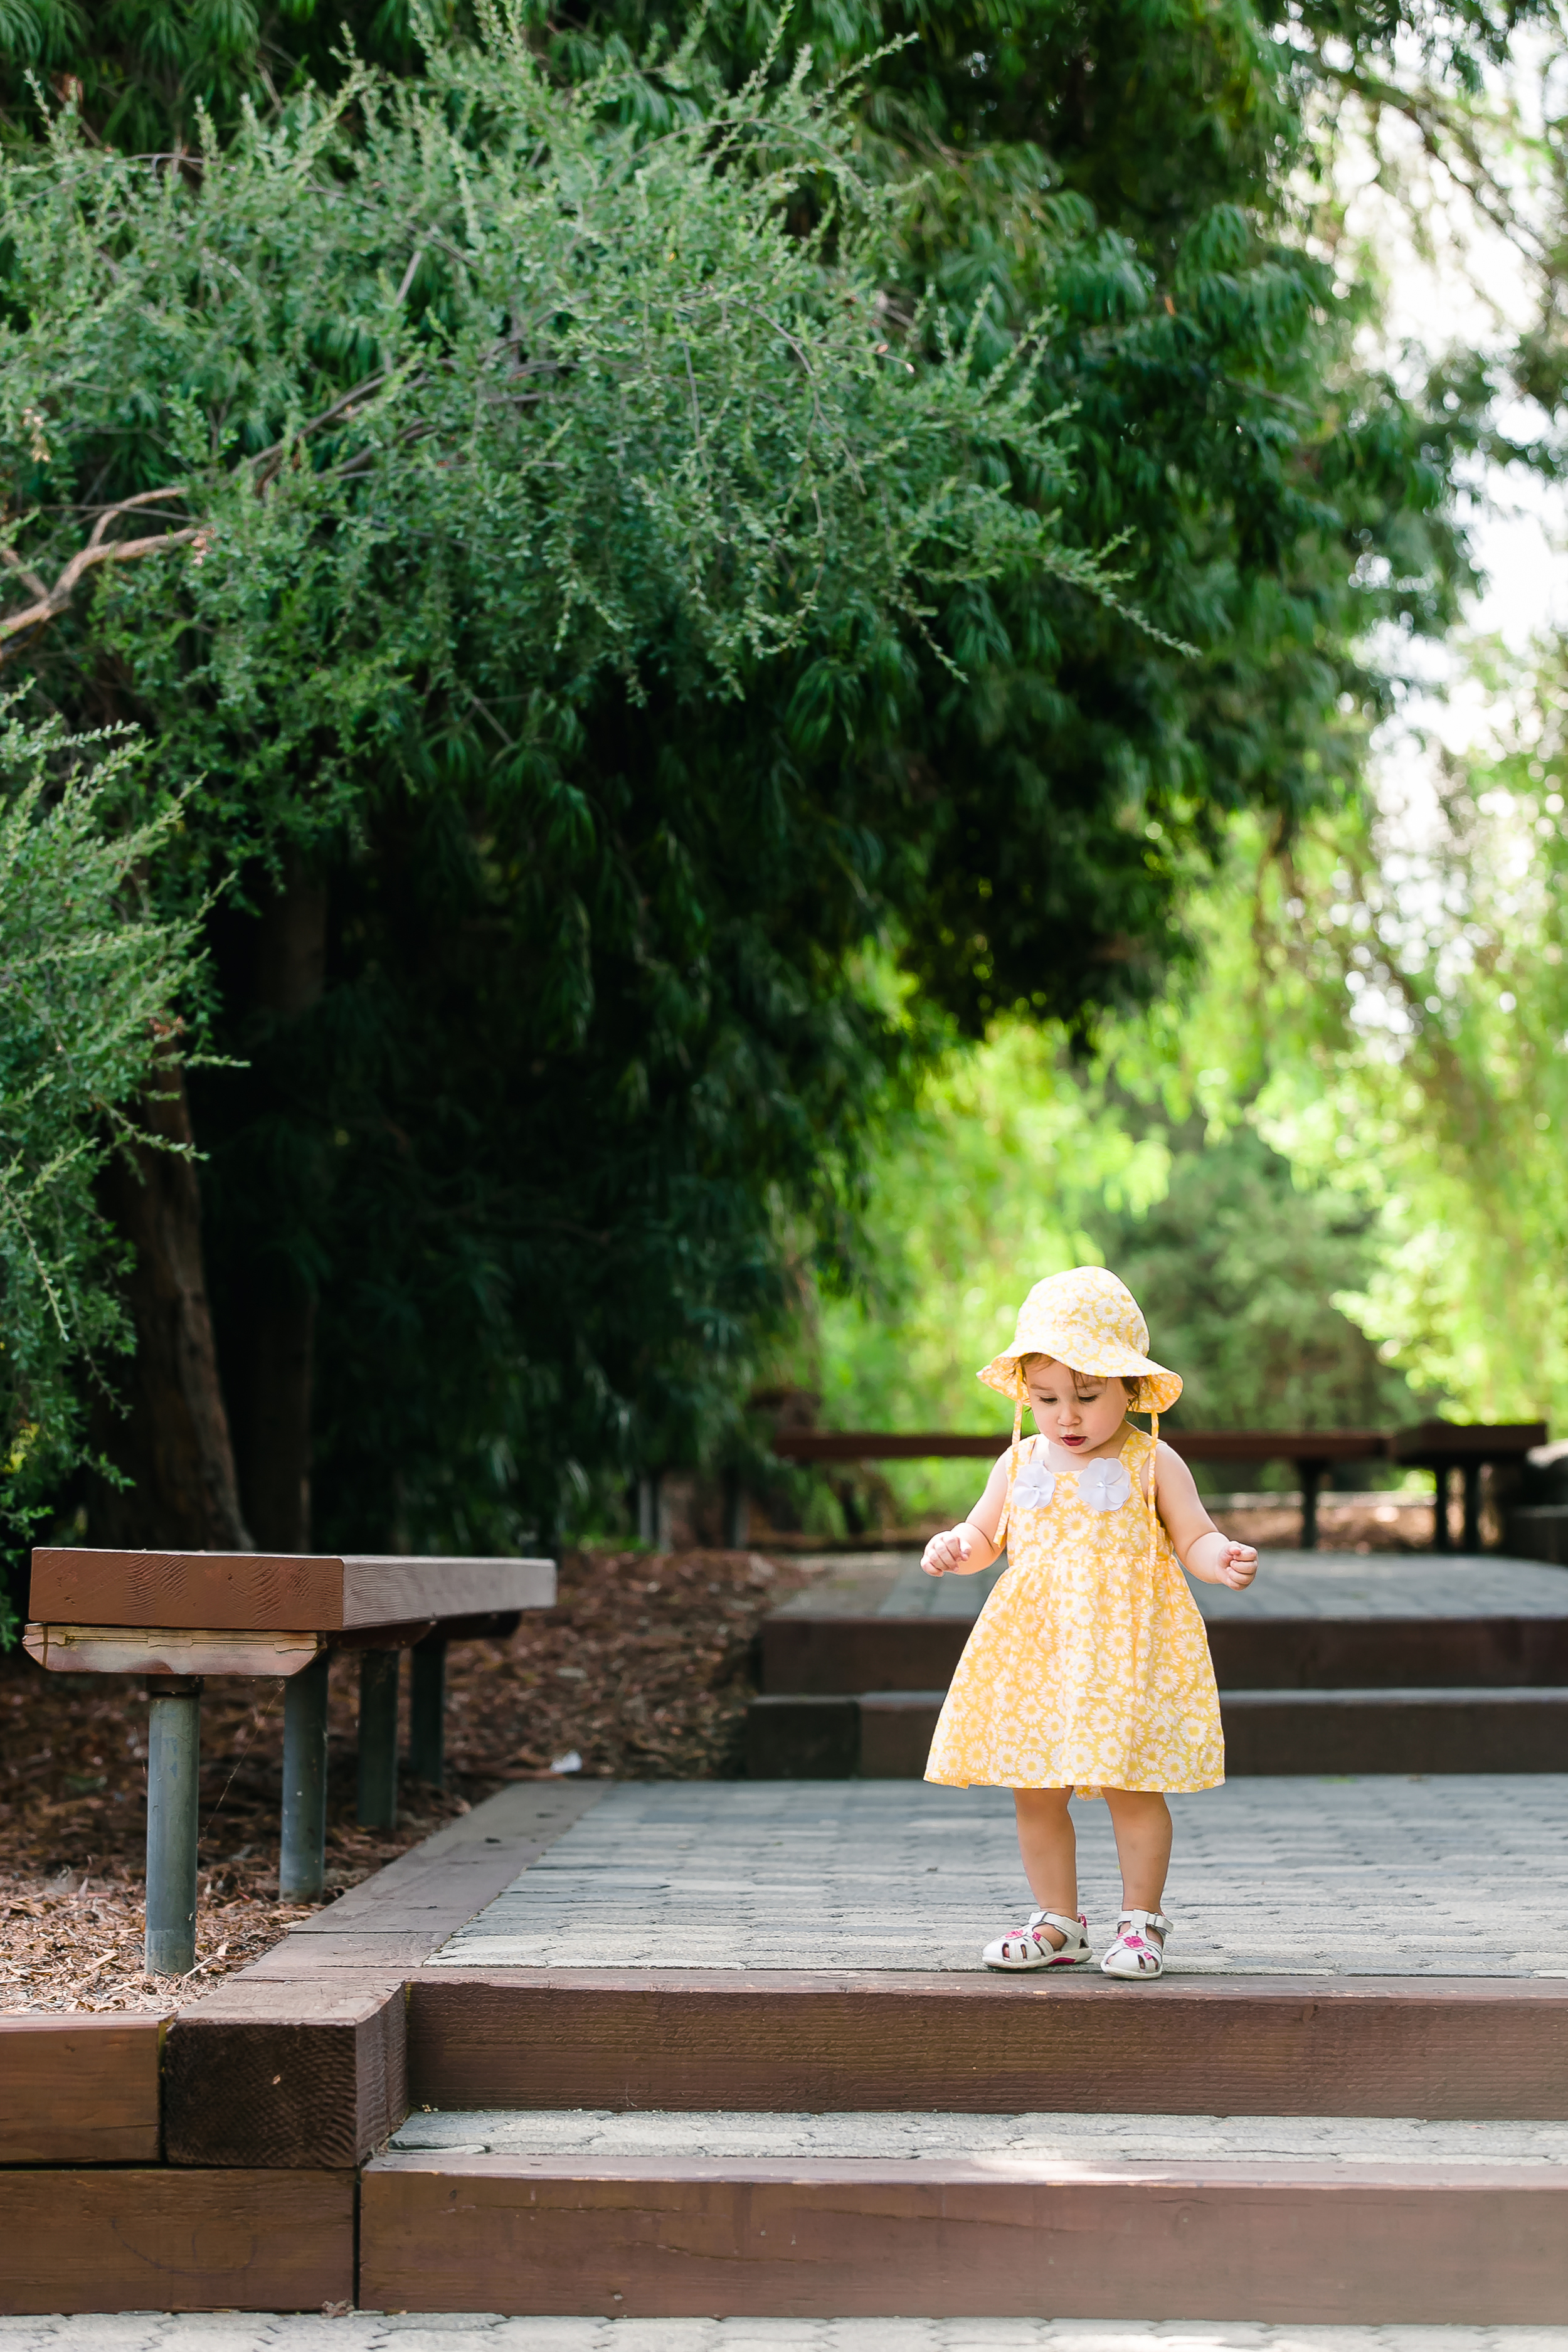 Los Angeles Family Photos, Arcadia Portrait Photography, Arboretum images, Little Yellow Dress, First Birthday, San Gabriel Lifestyle Photographer, Gina Holt Photography, Love, Celebrate, Amazing Family and Baby Pictures